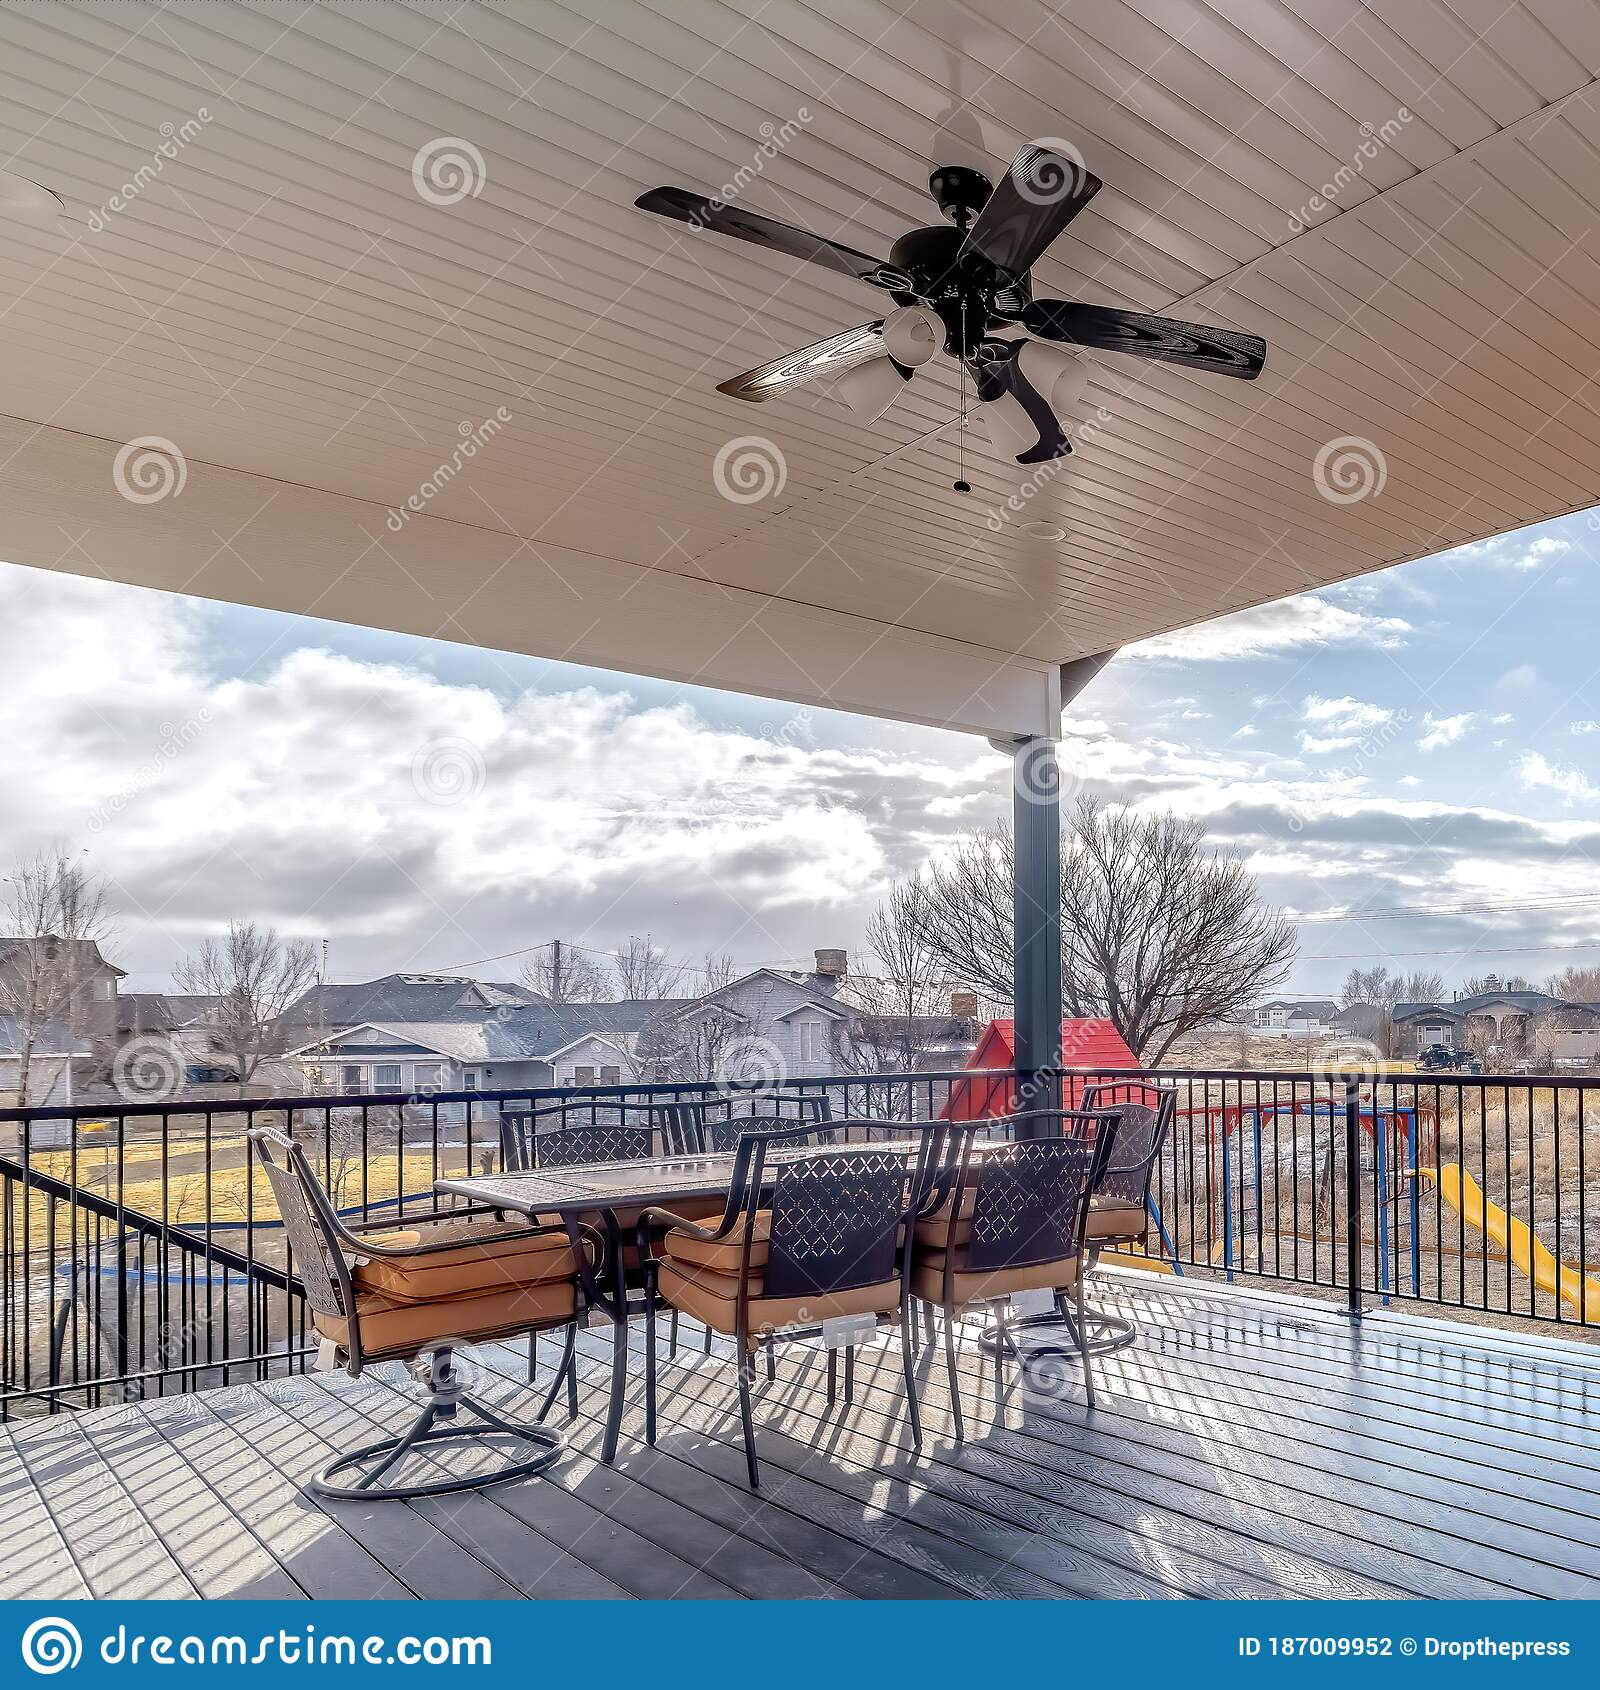 Square Frame Dining Table Chairs And Ceiling Fan With Light On Wooden Deck With Metal Railing Stock Photo Image Of Residence Homes 187009952